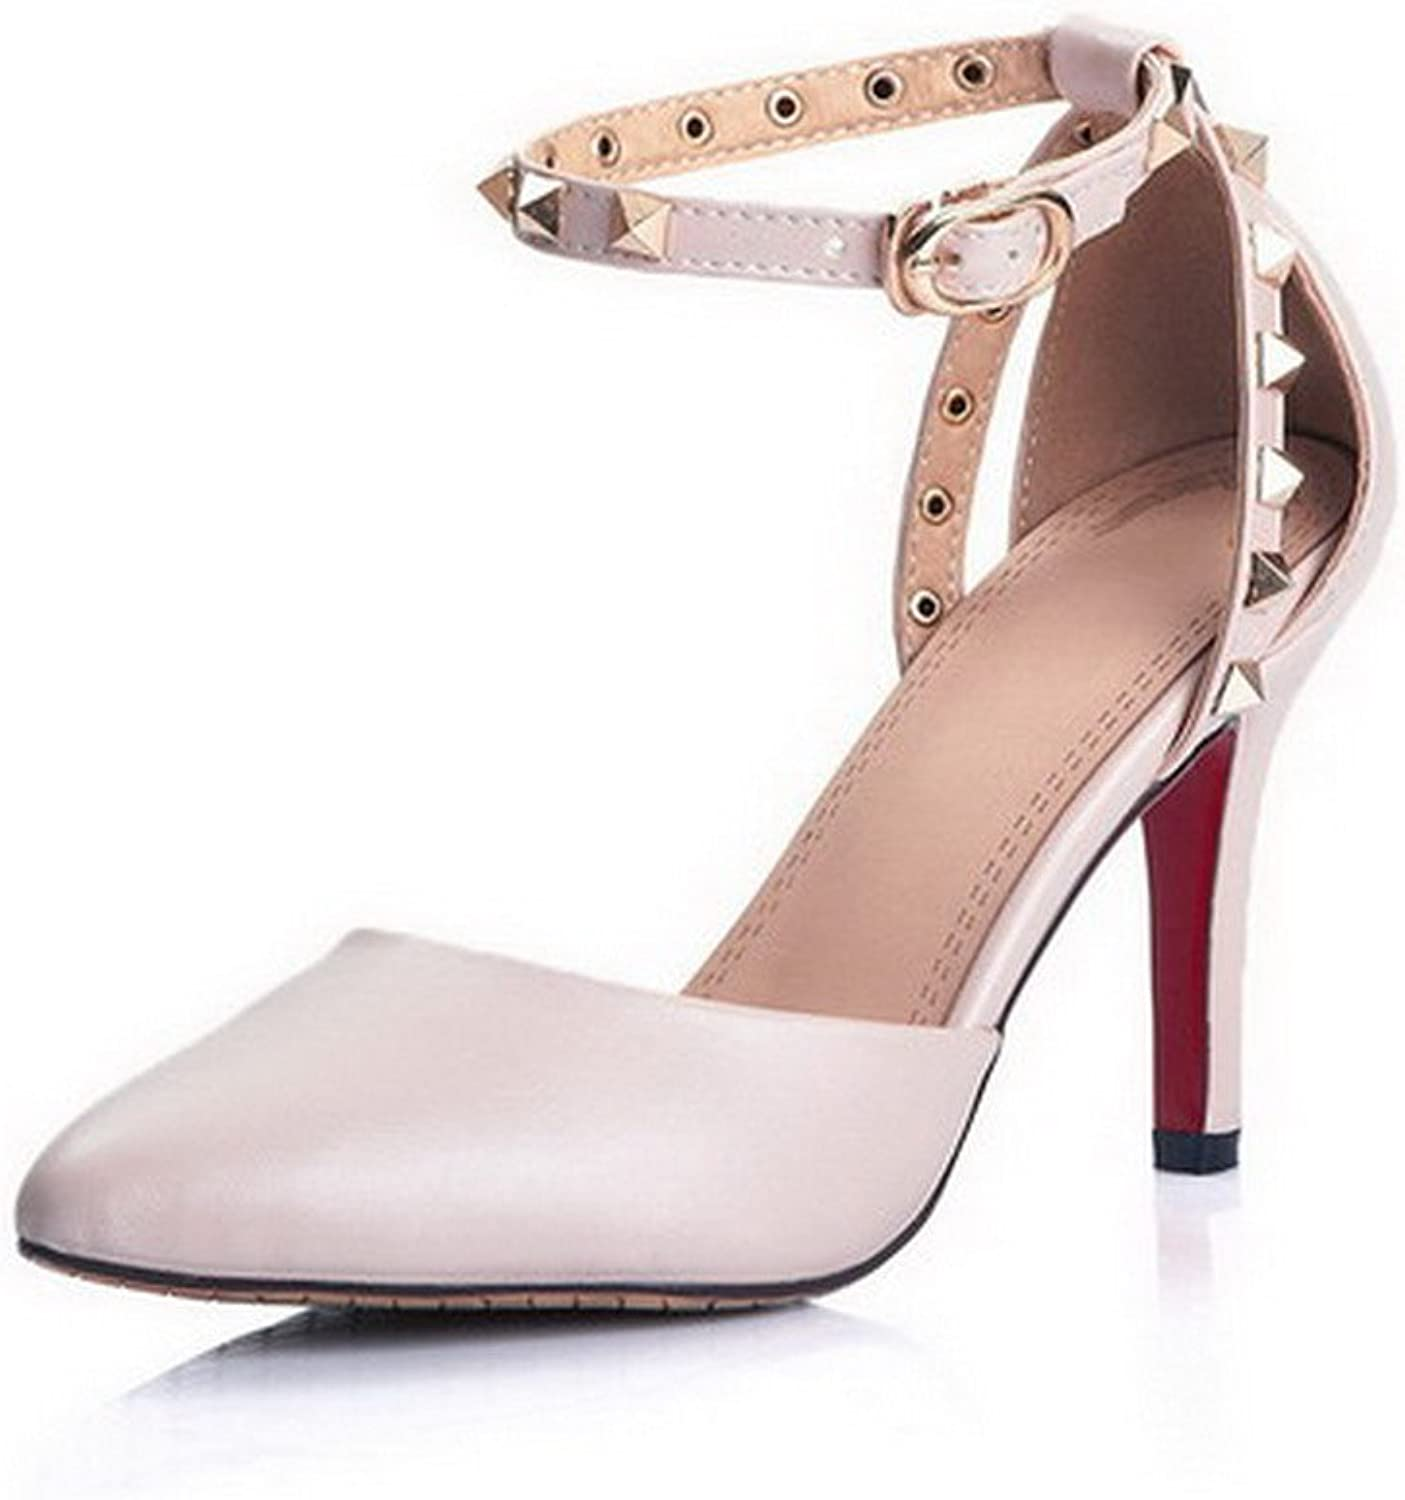 WeenFashion Women's Pointed Closed Toe Spikes Stilettos Soft Material Solid Buckle Pumps shoes